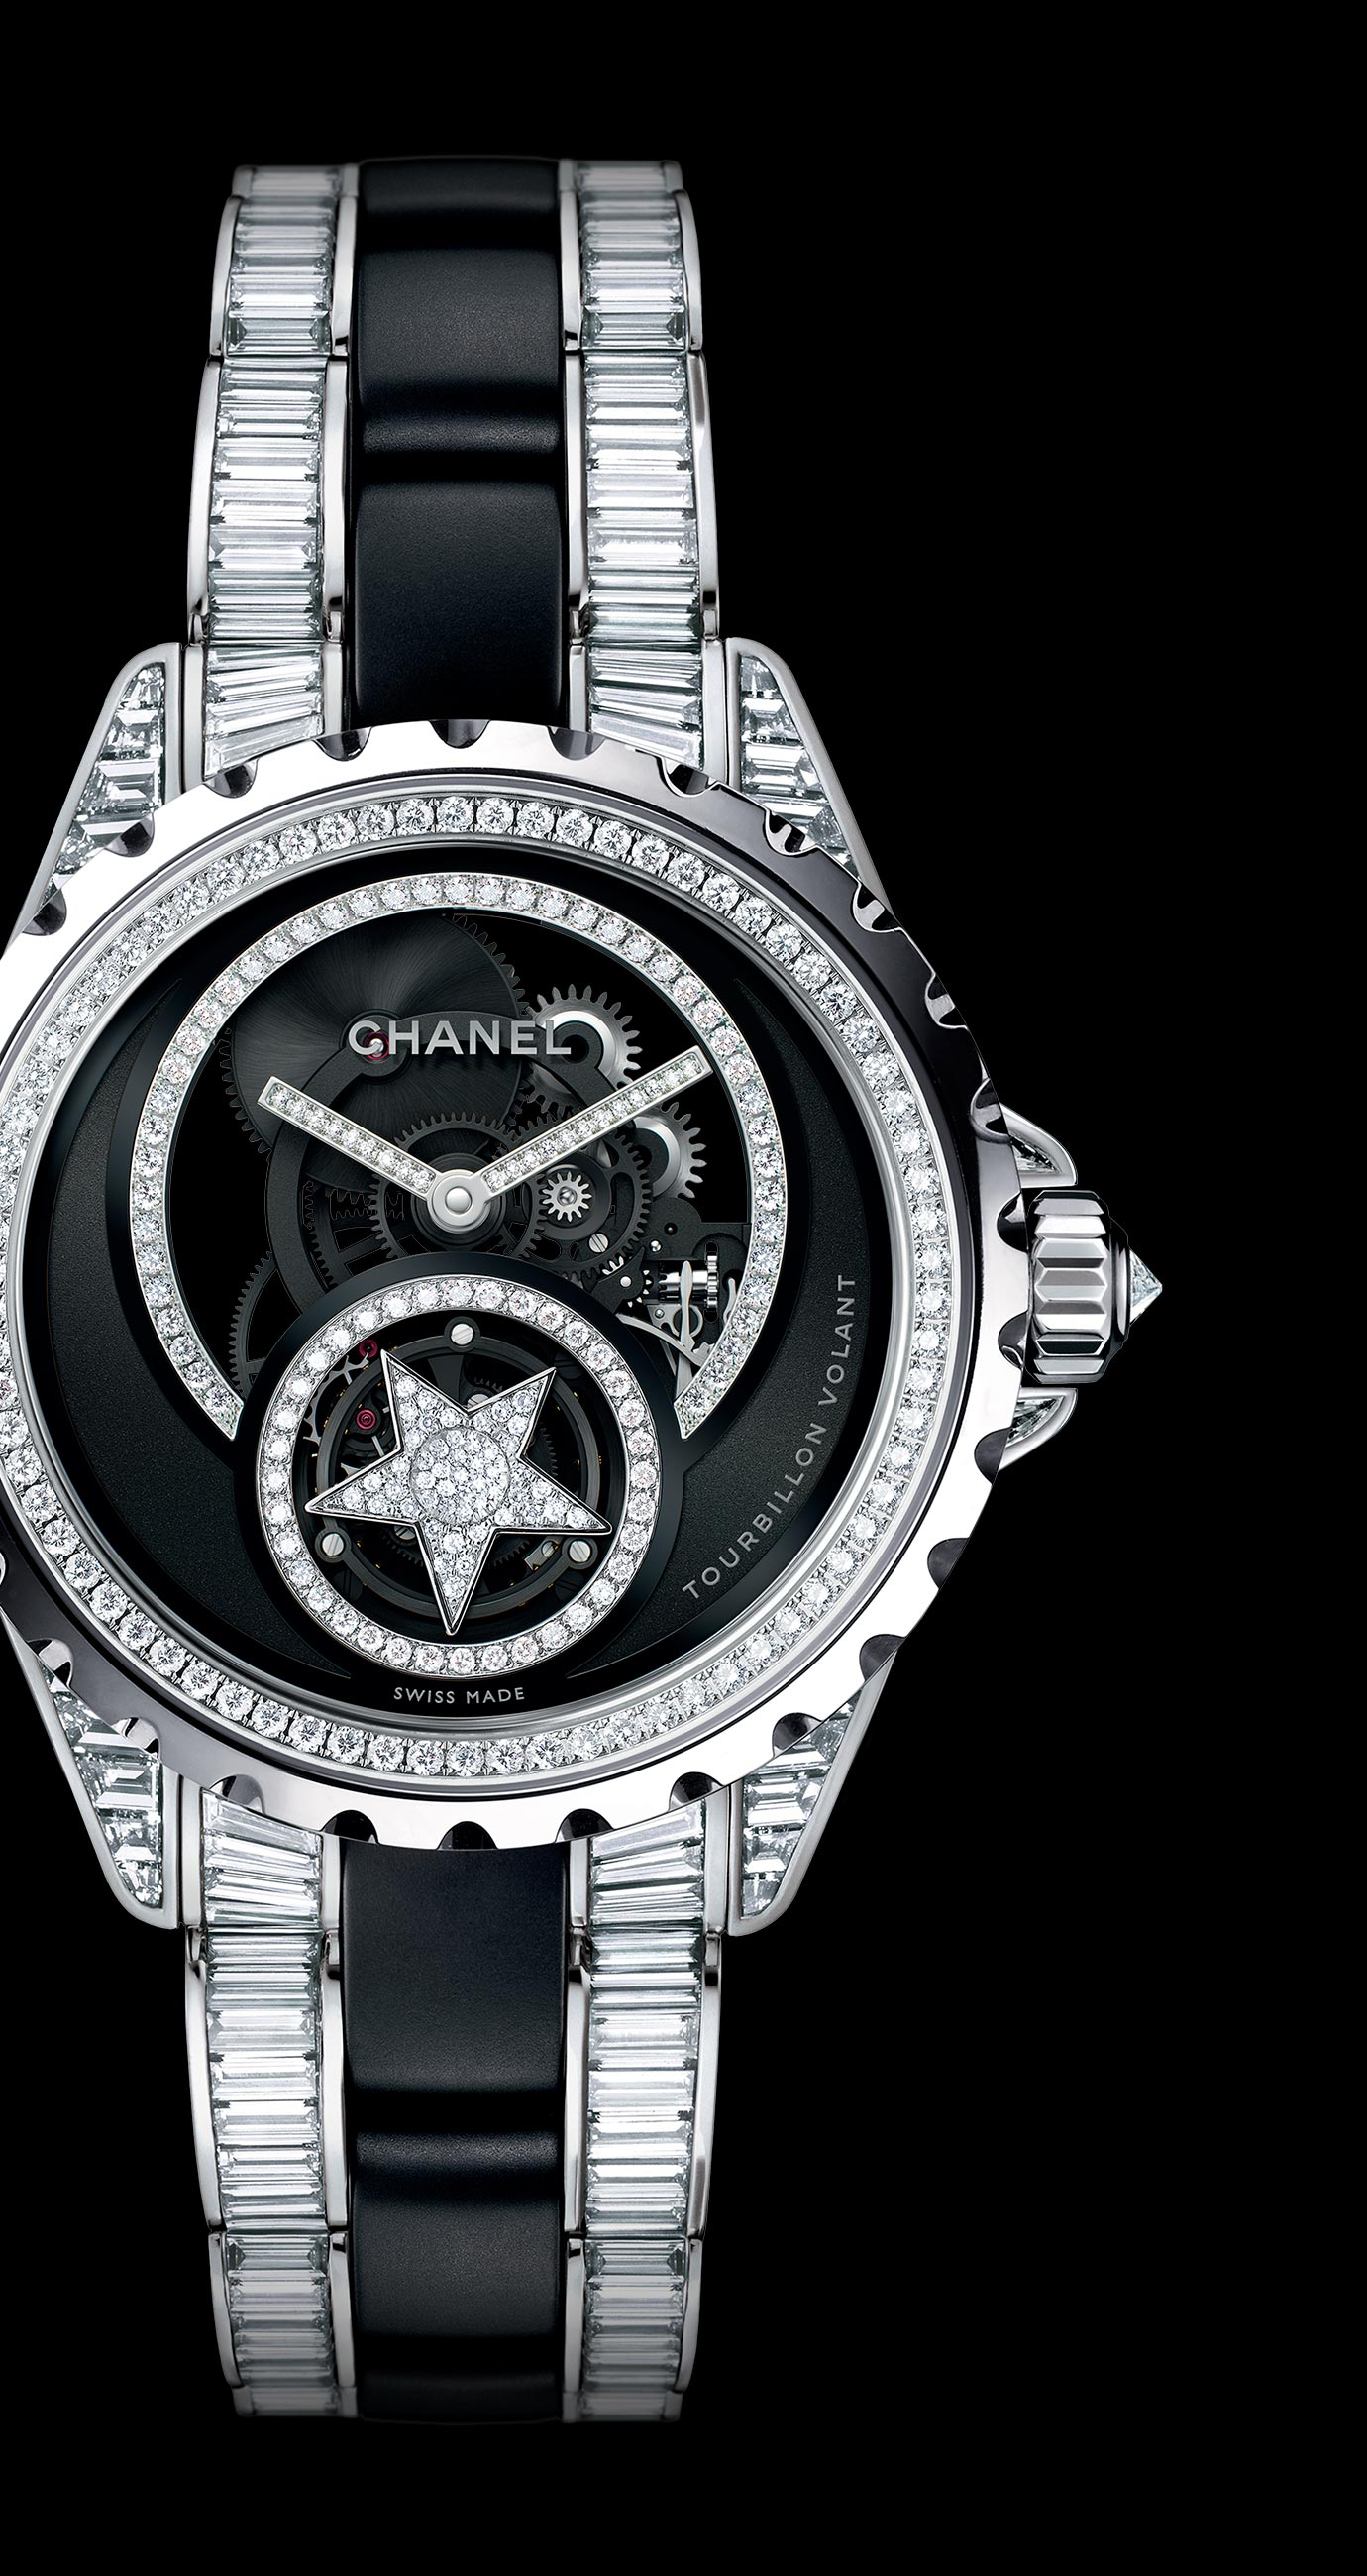 J12 Flying Tourbillon Skeleton in 18K white gold and black high-tech ceramic set with diamonds. Bracelet set with baguette-cut diamonds. - Enlarged view